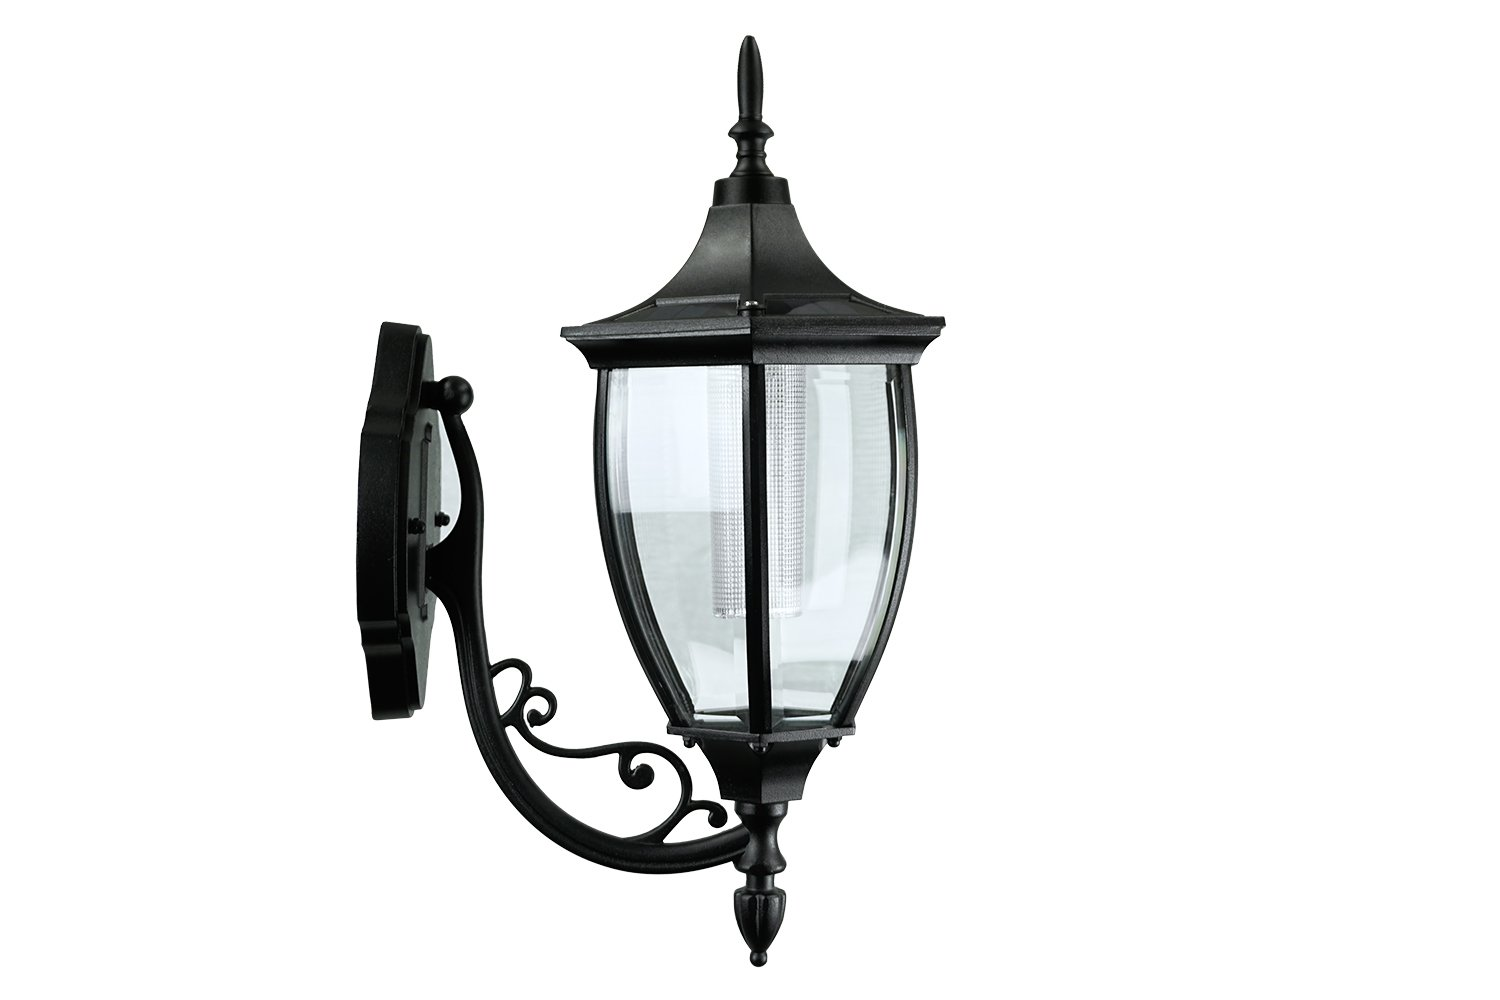 Sun-Ray 312079 Crestmont Wall Mount Solar Lantern, No Wiring Needed, Batteries Included, 17.8 inches, Black by Sun-Ray